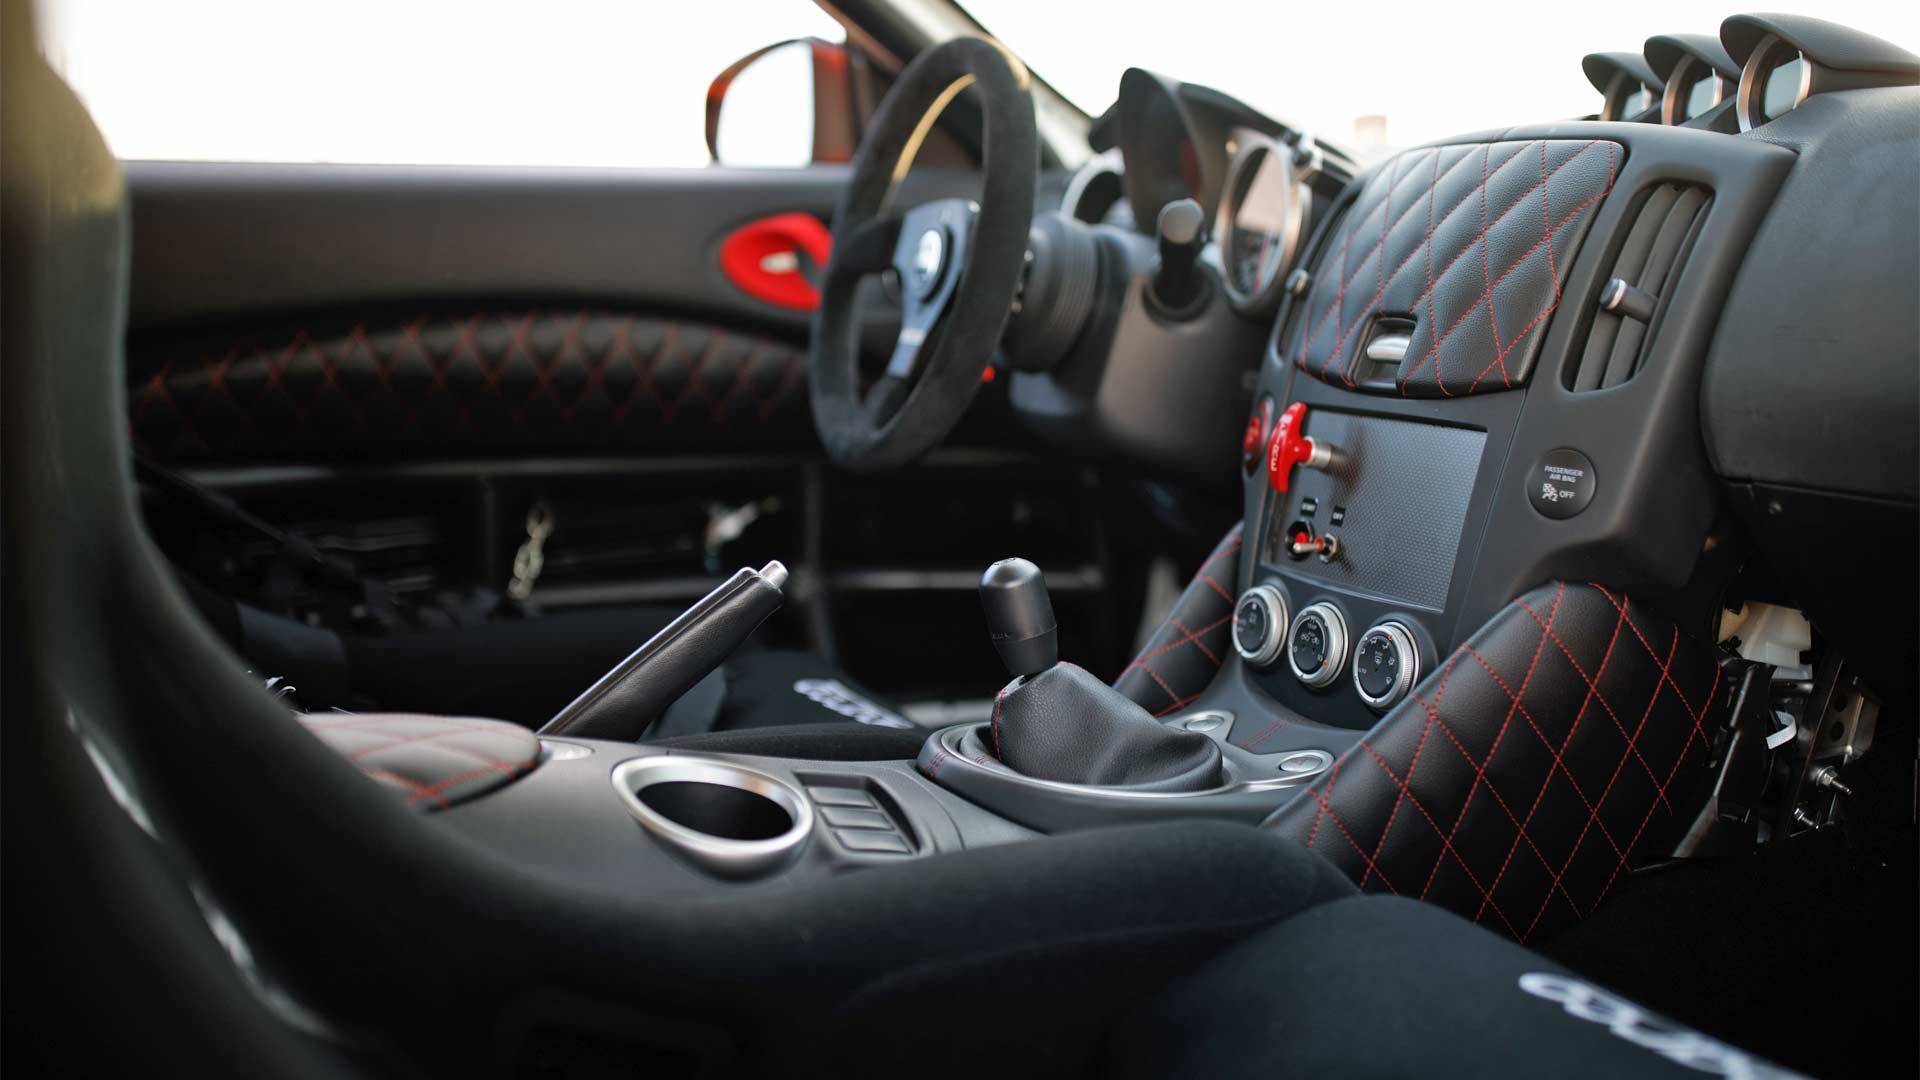 Nissan-370Z-Project-Clubsport-23-Interior_2